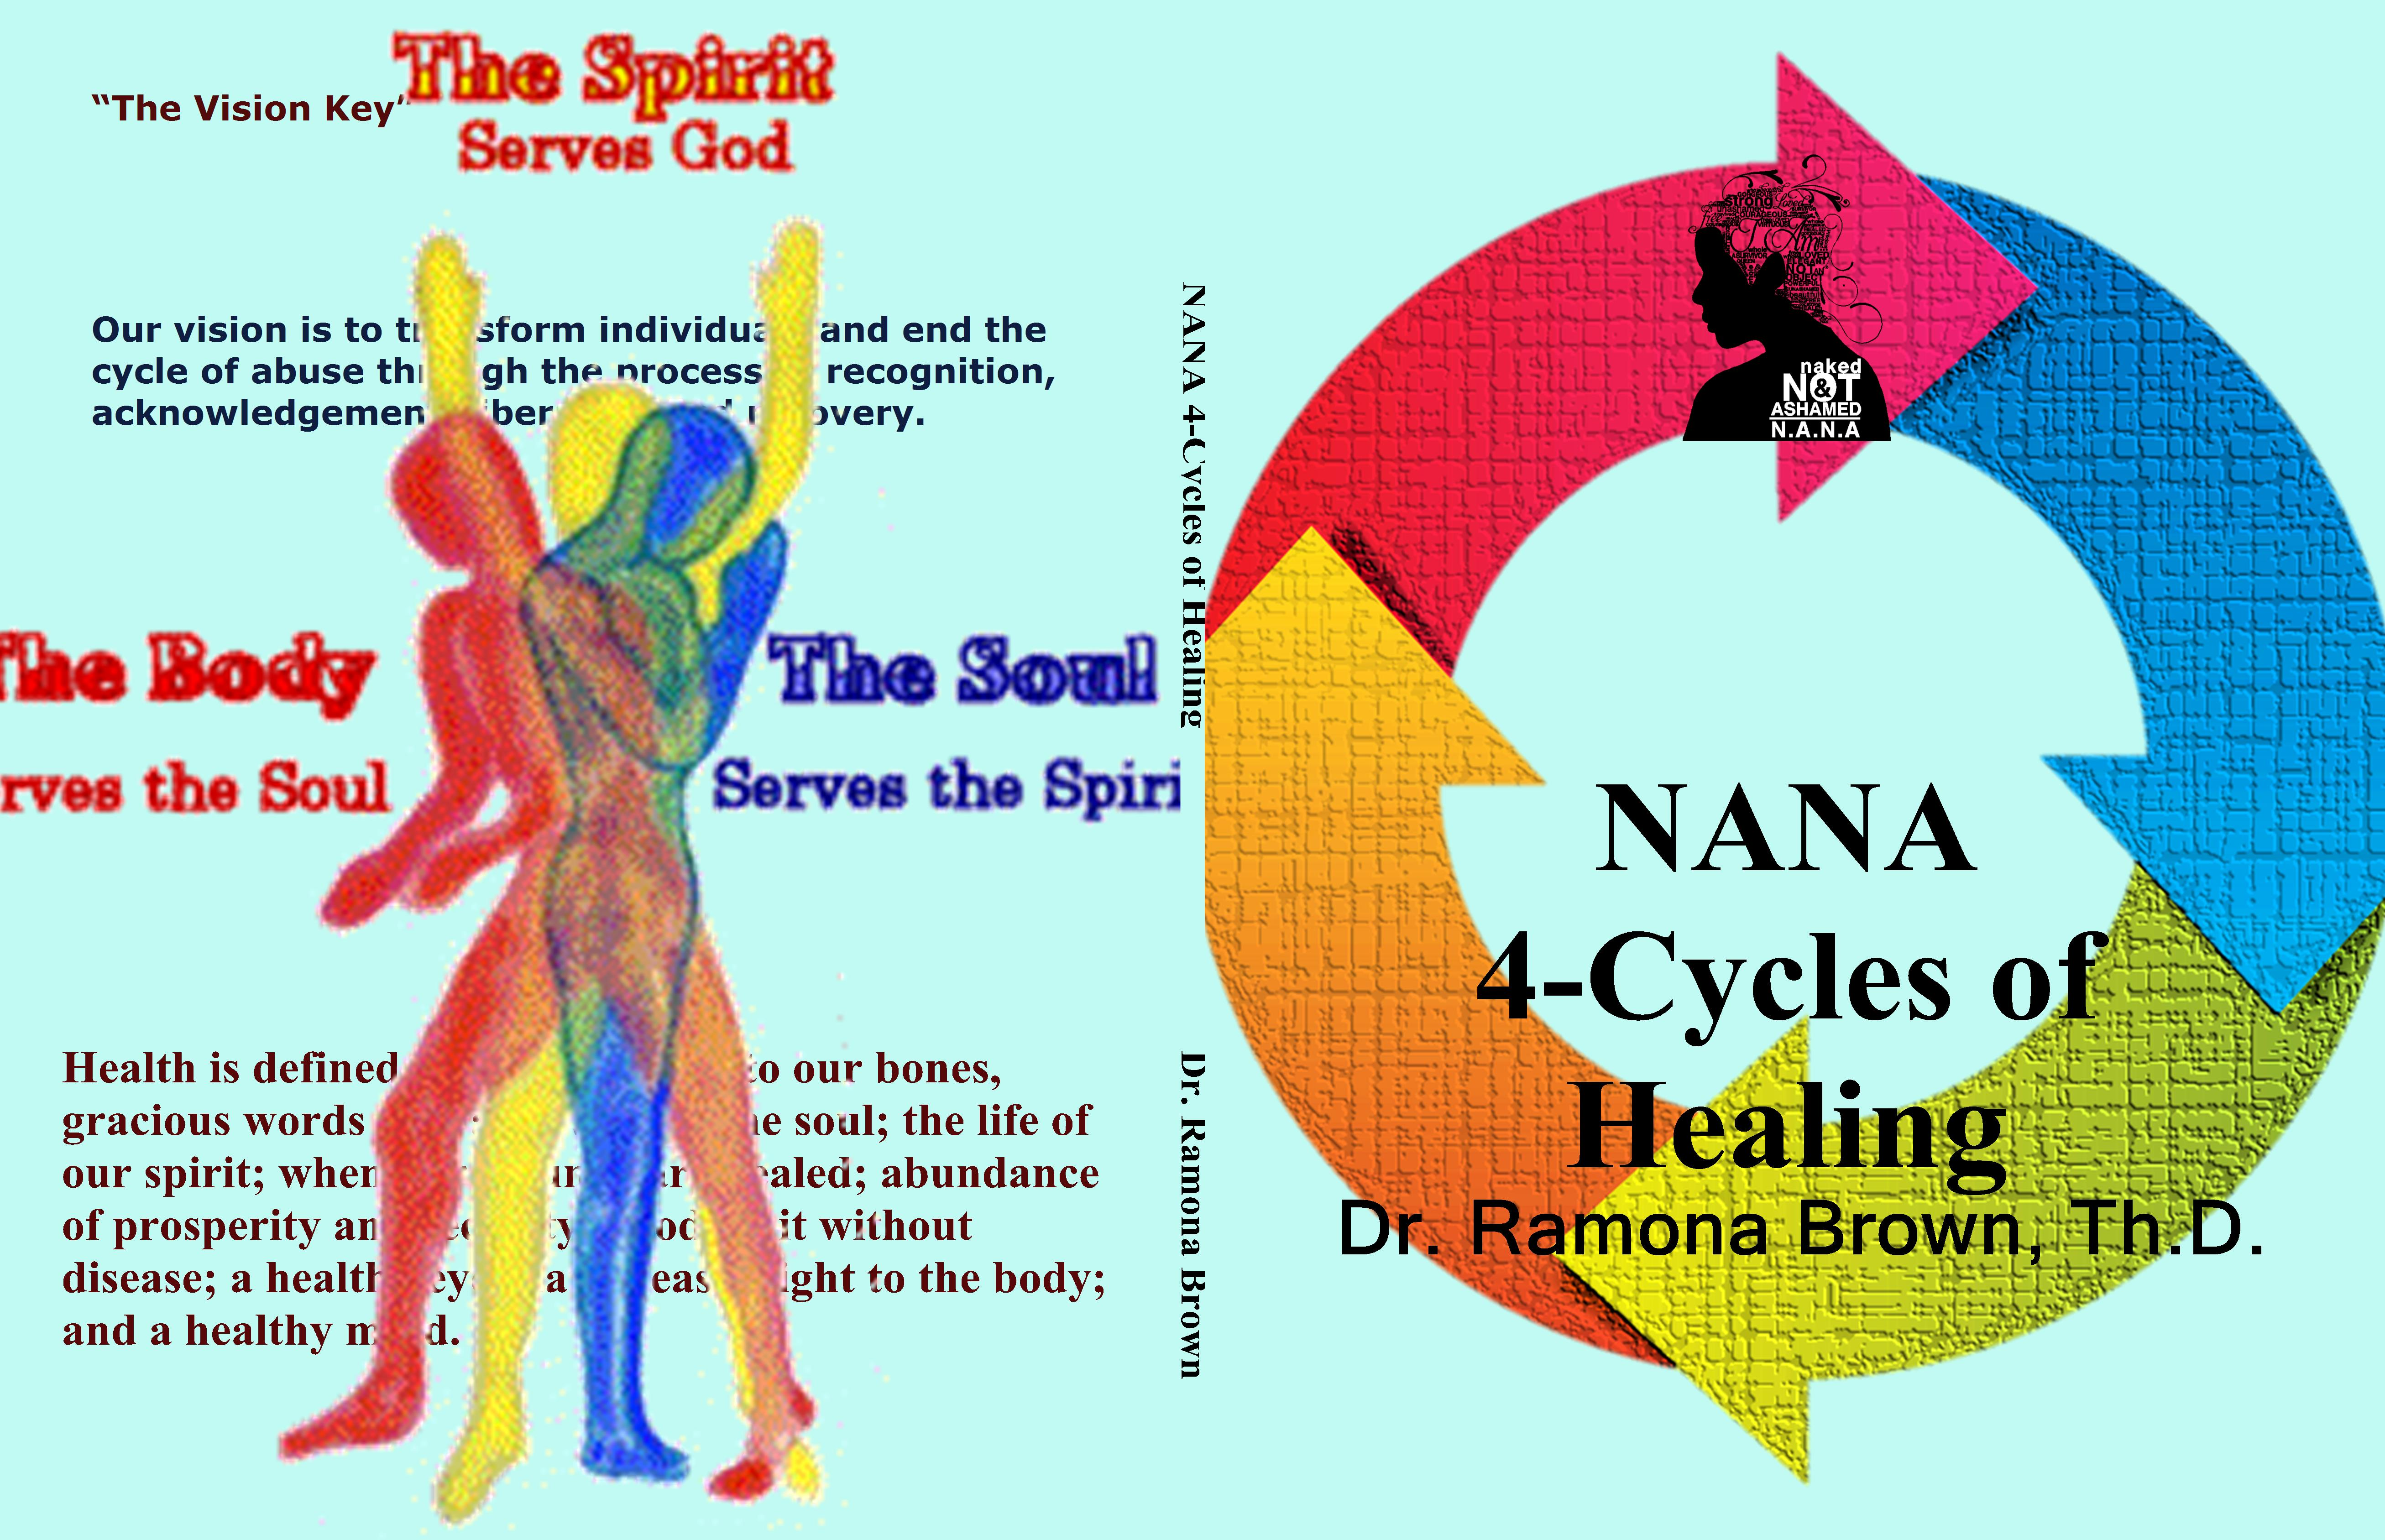 NANA 4-Cycles of Healing by Dr. Ramona Brown, Th.D. : $15.00 ...